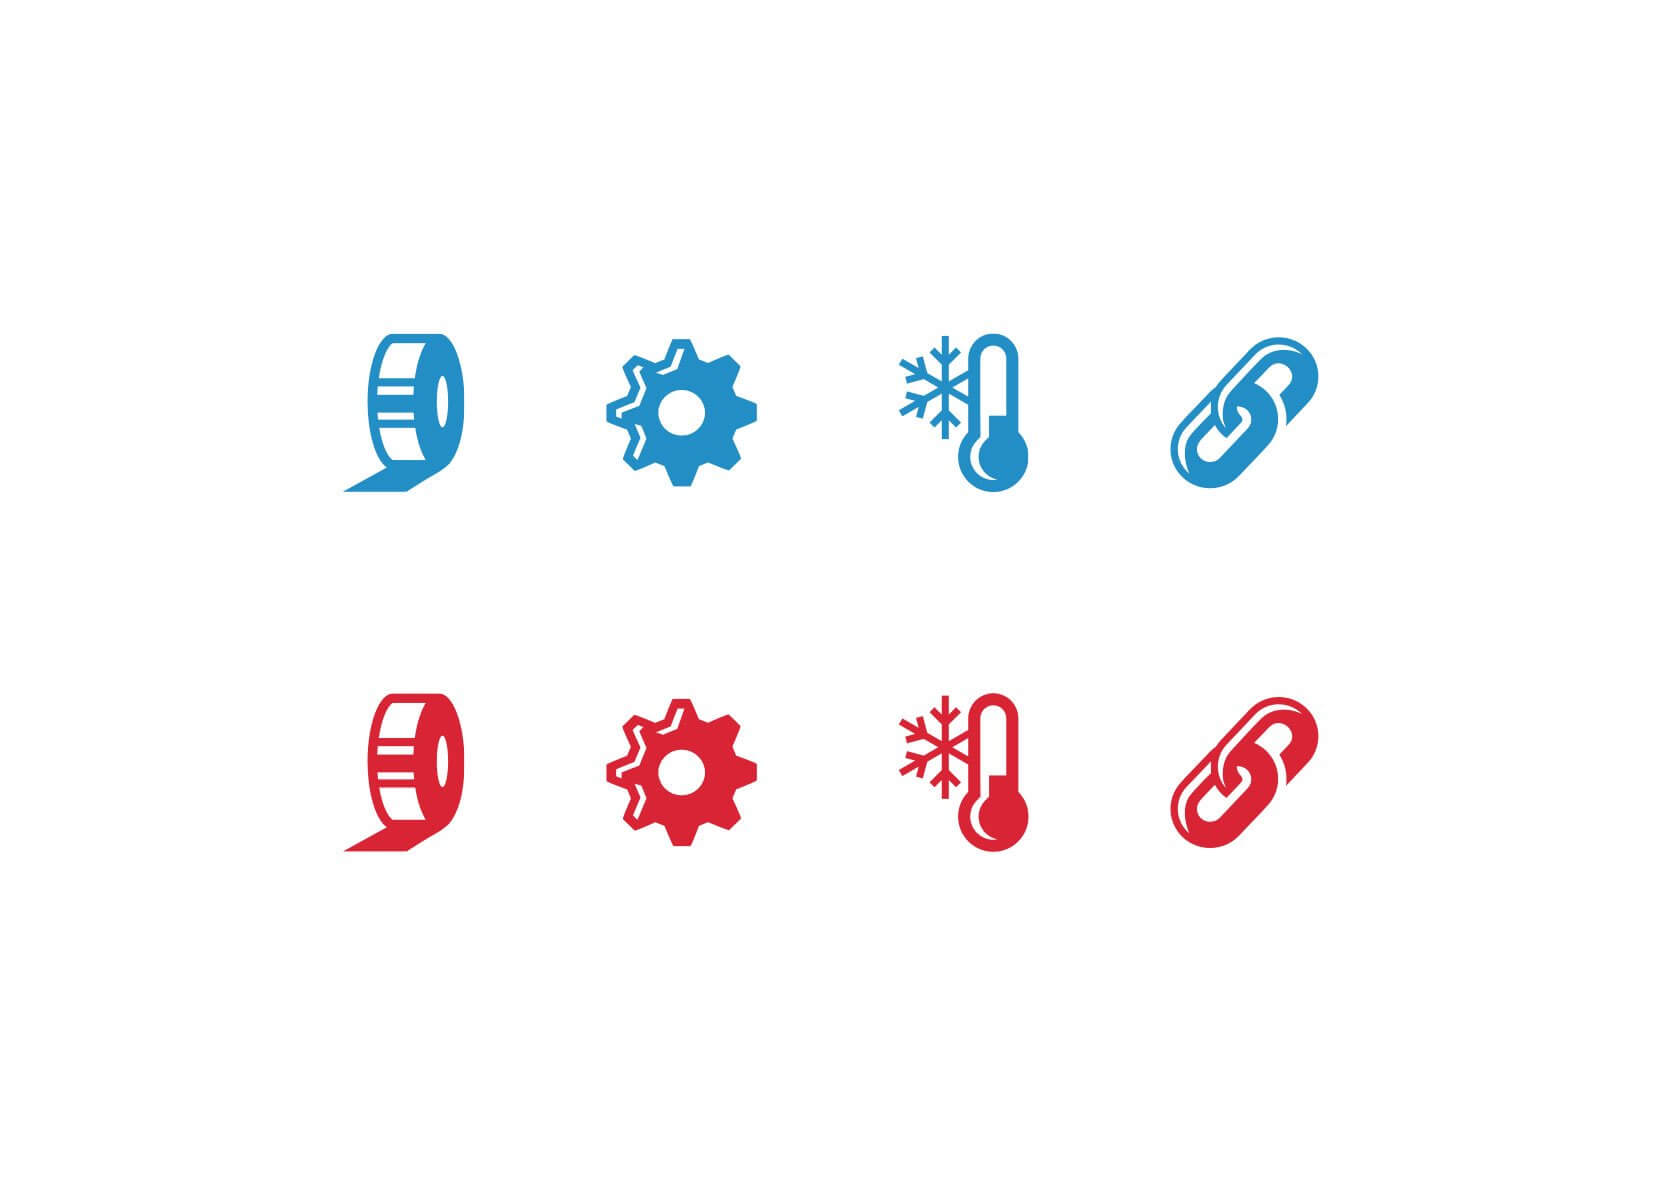 echotape icon set design